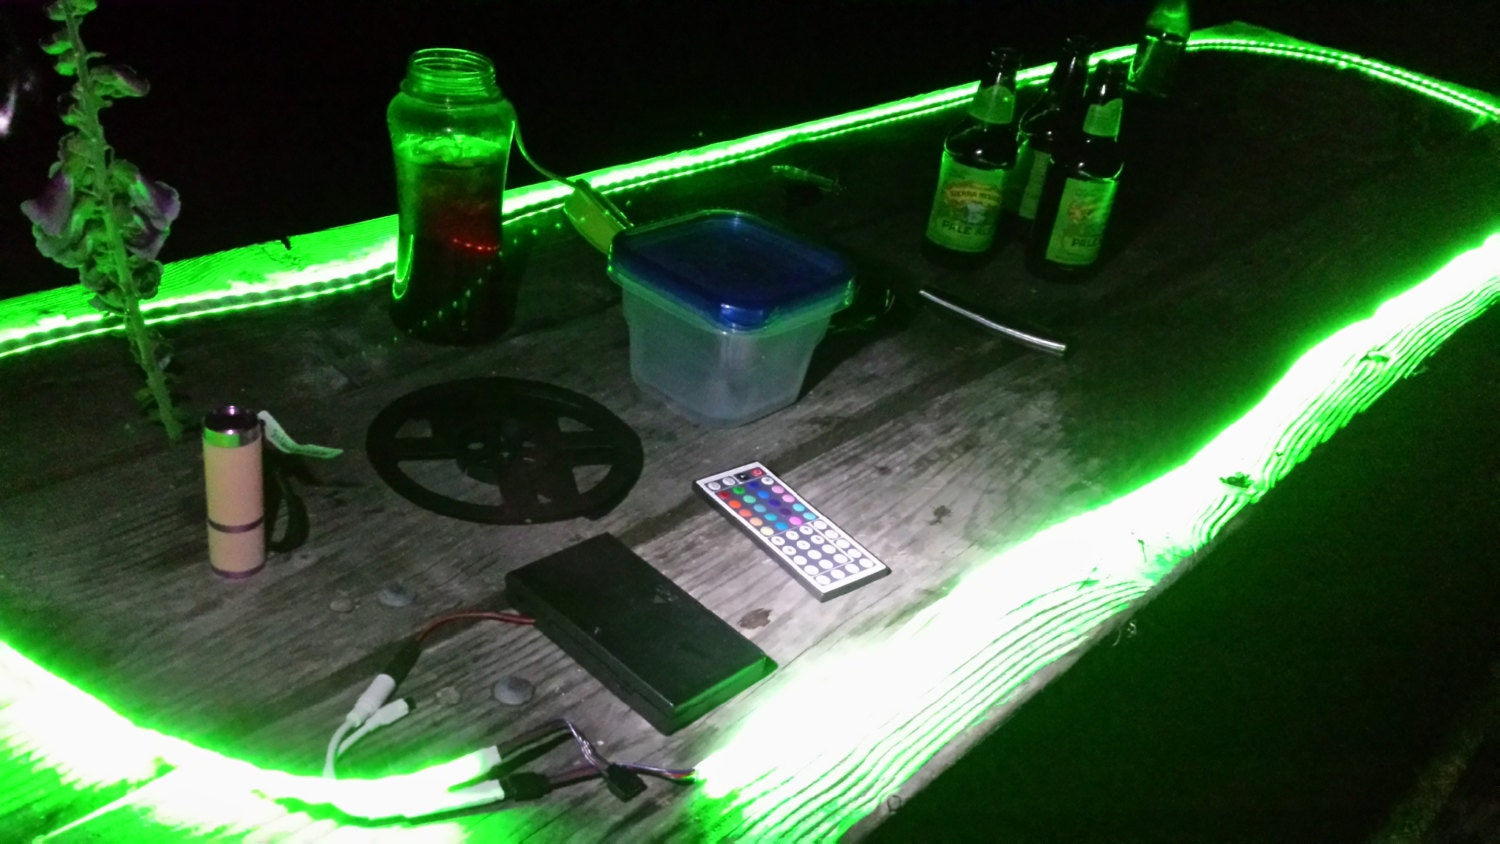 Camping battery operated led strip light kit 44 key remote zoom mozeypictures Choice Image